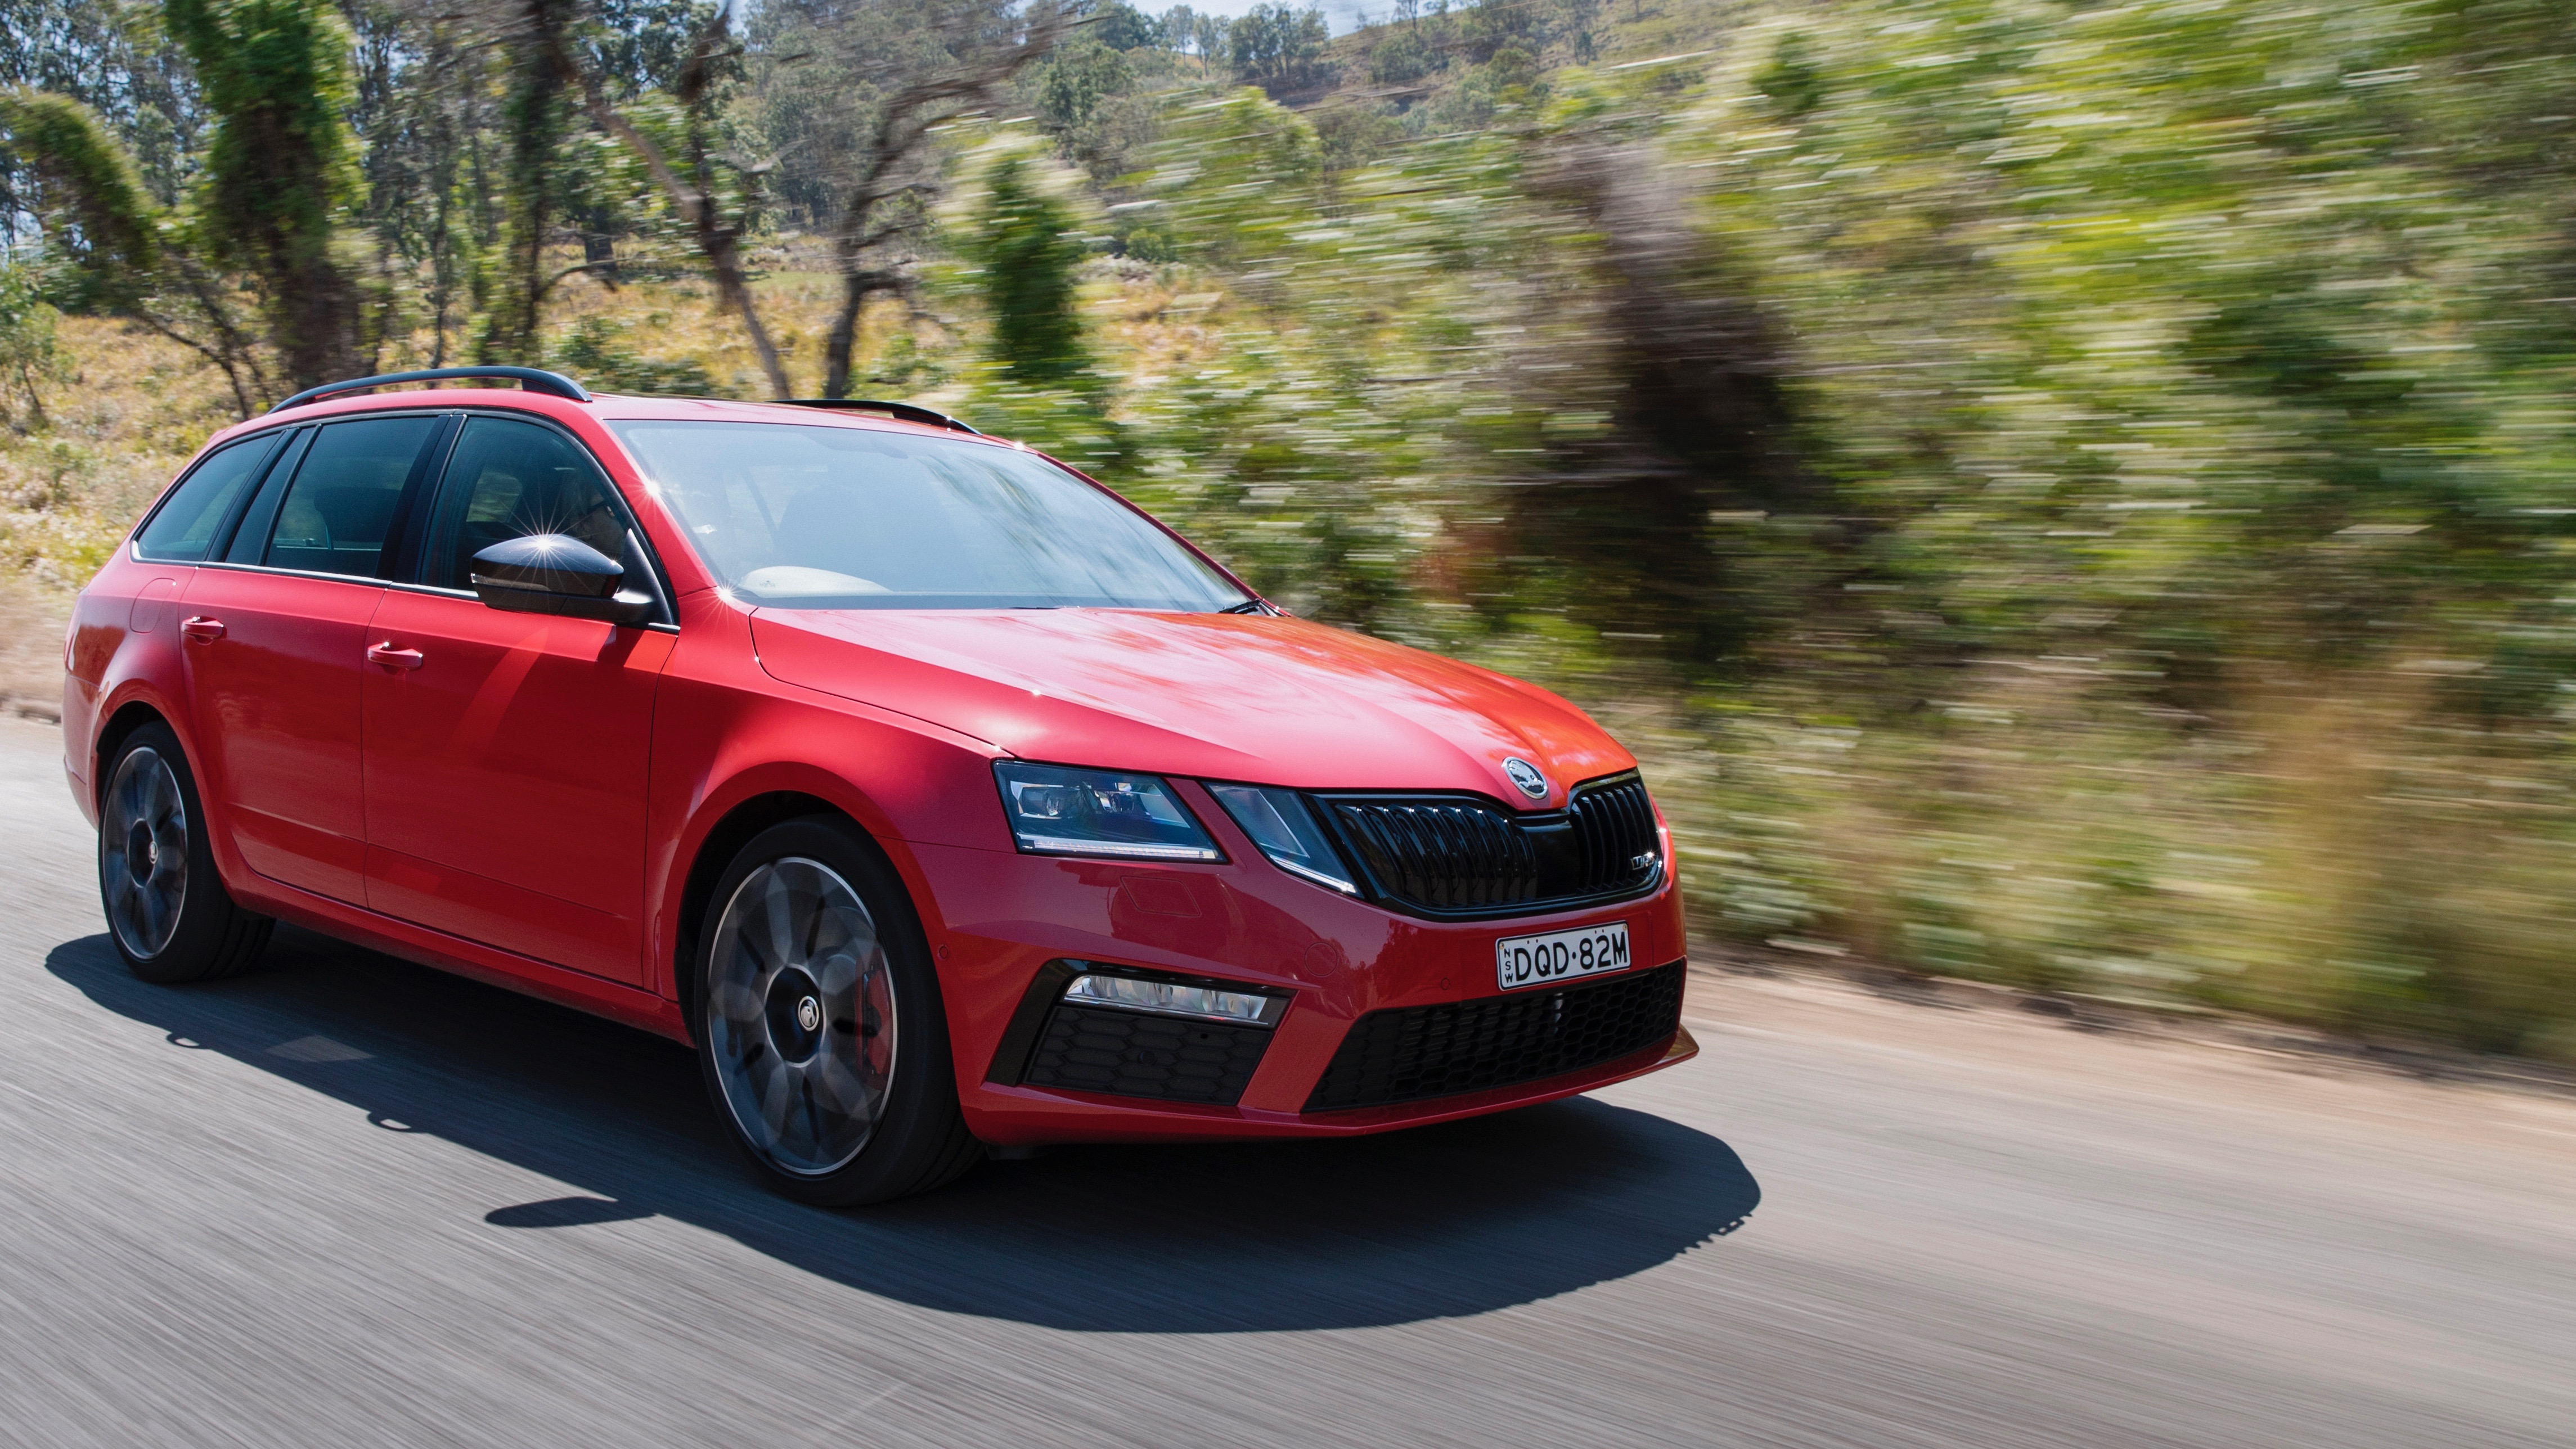 2018 Skoda Octavia RS245 red front 3/4